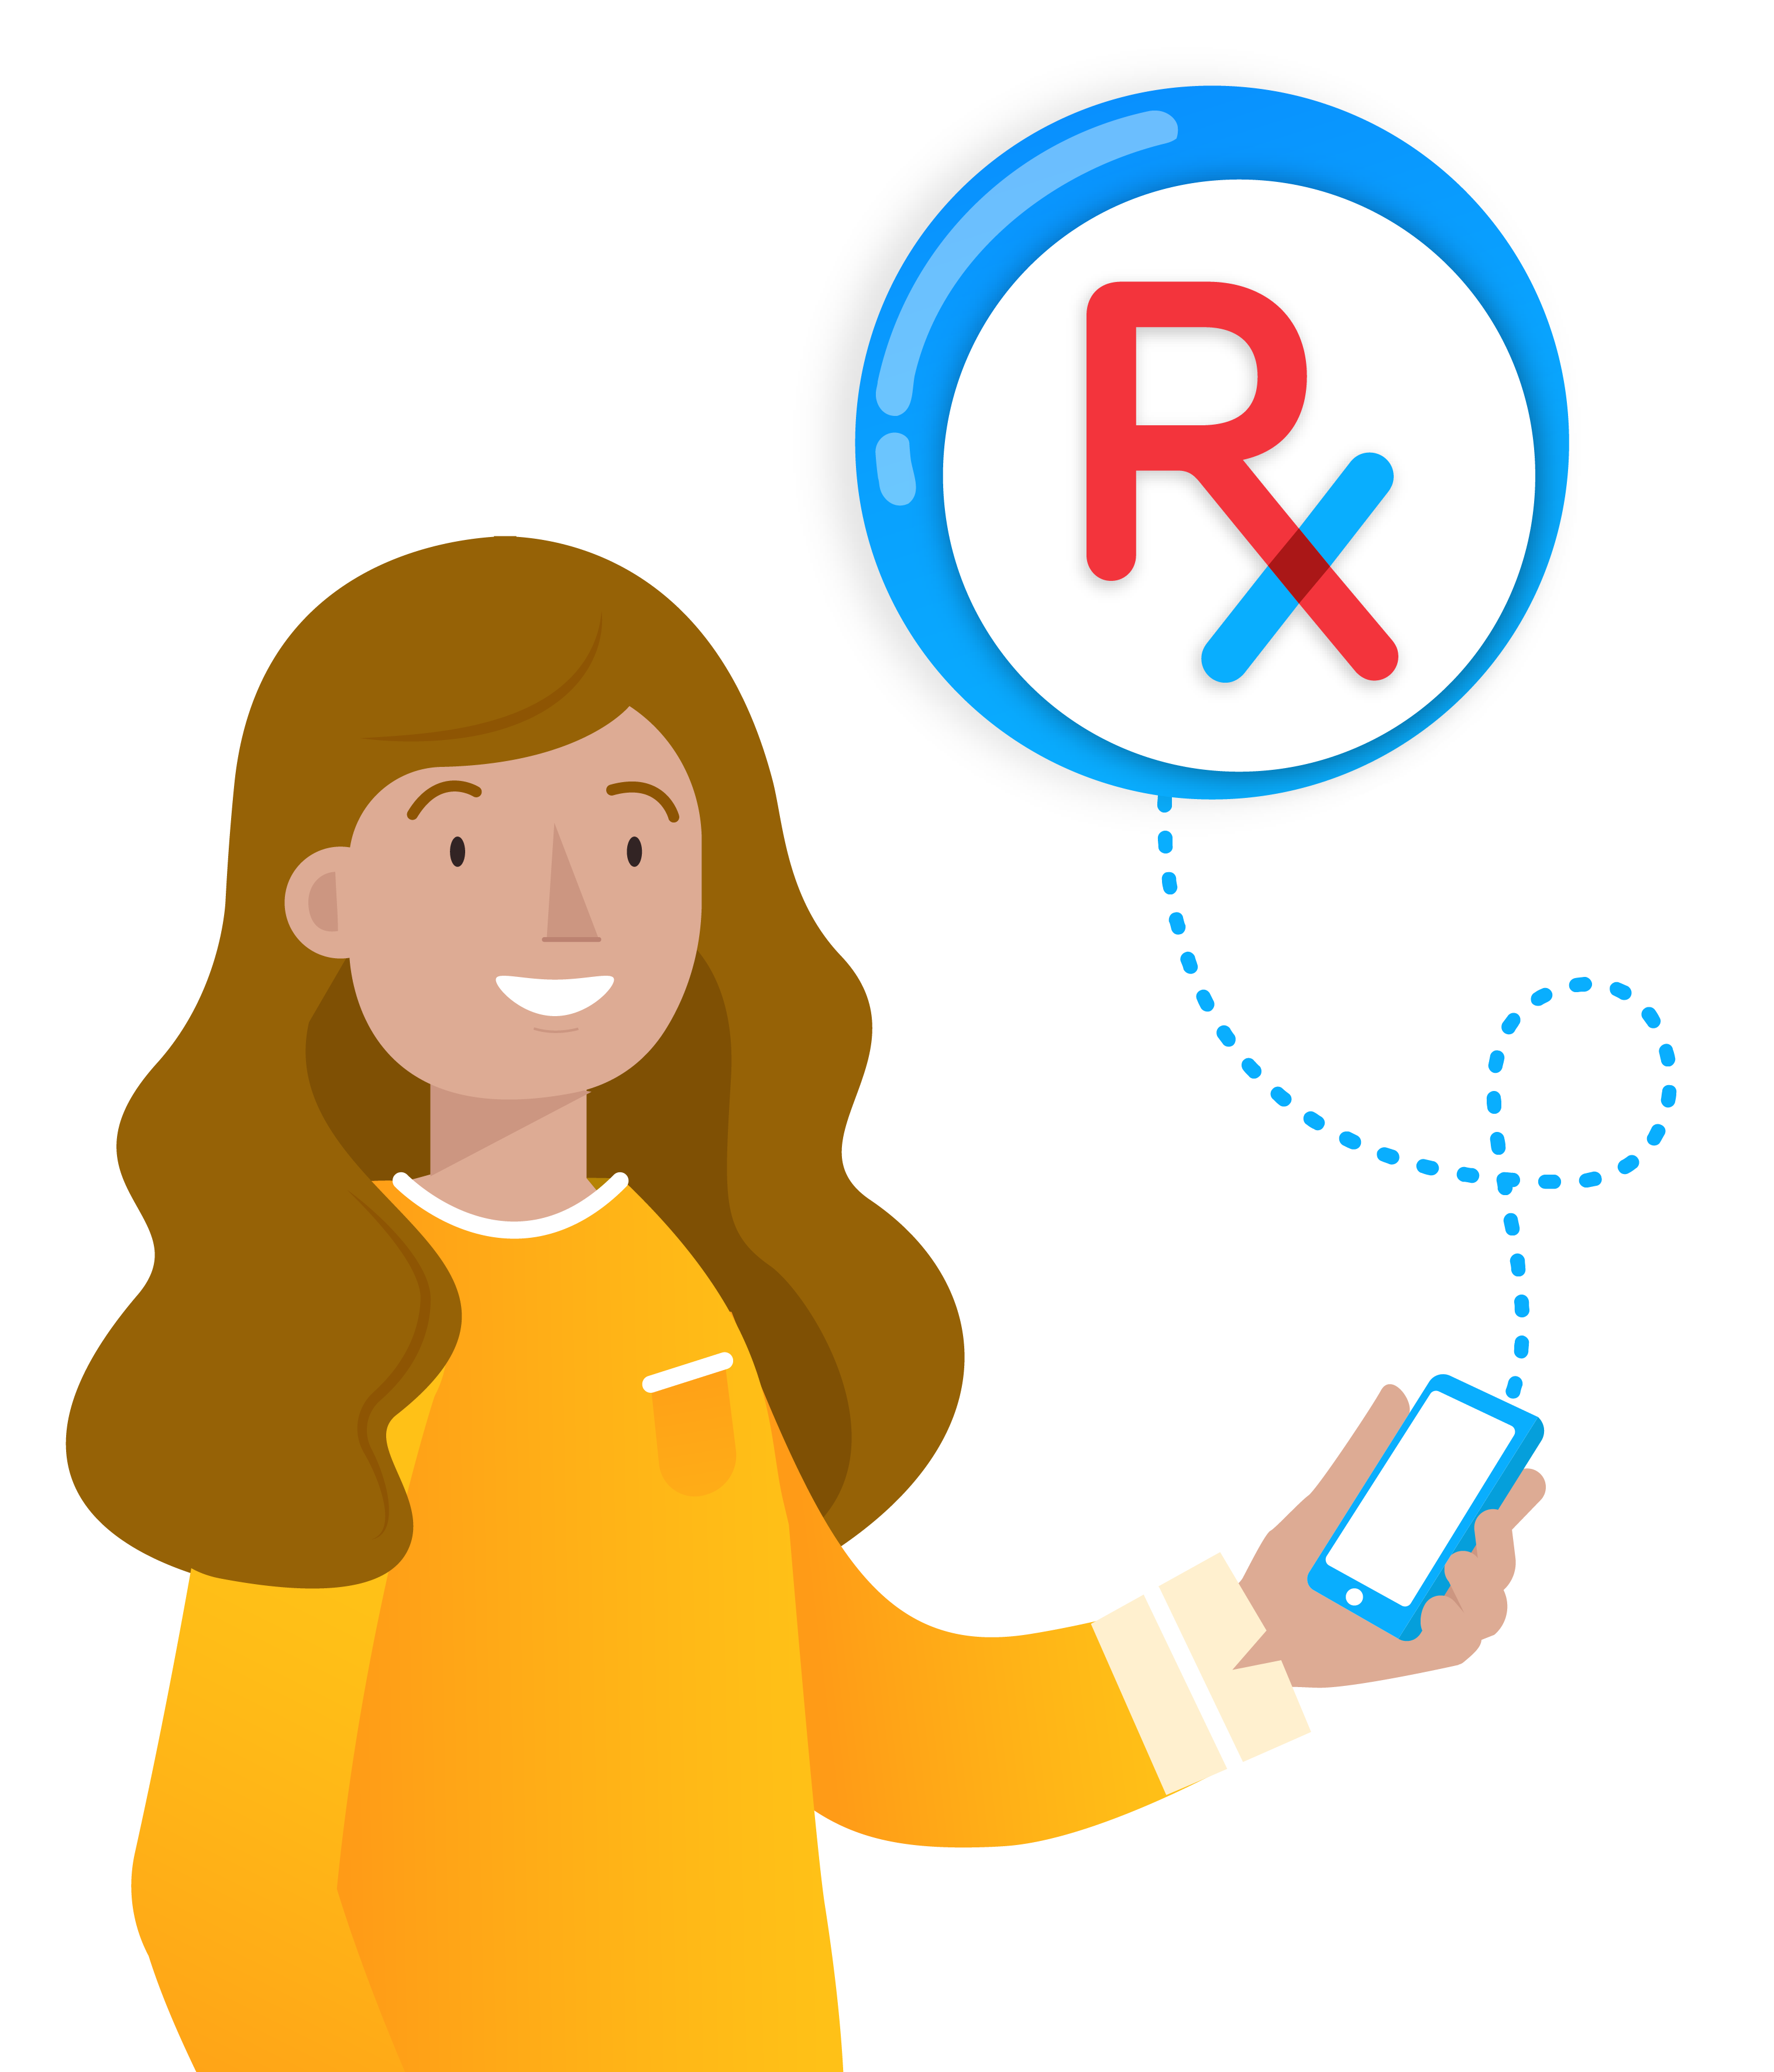 female patient smiling and holding phone using rxlocal